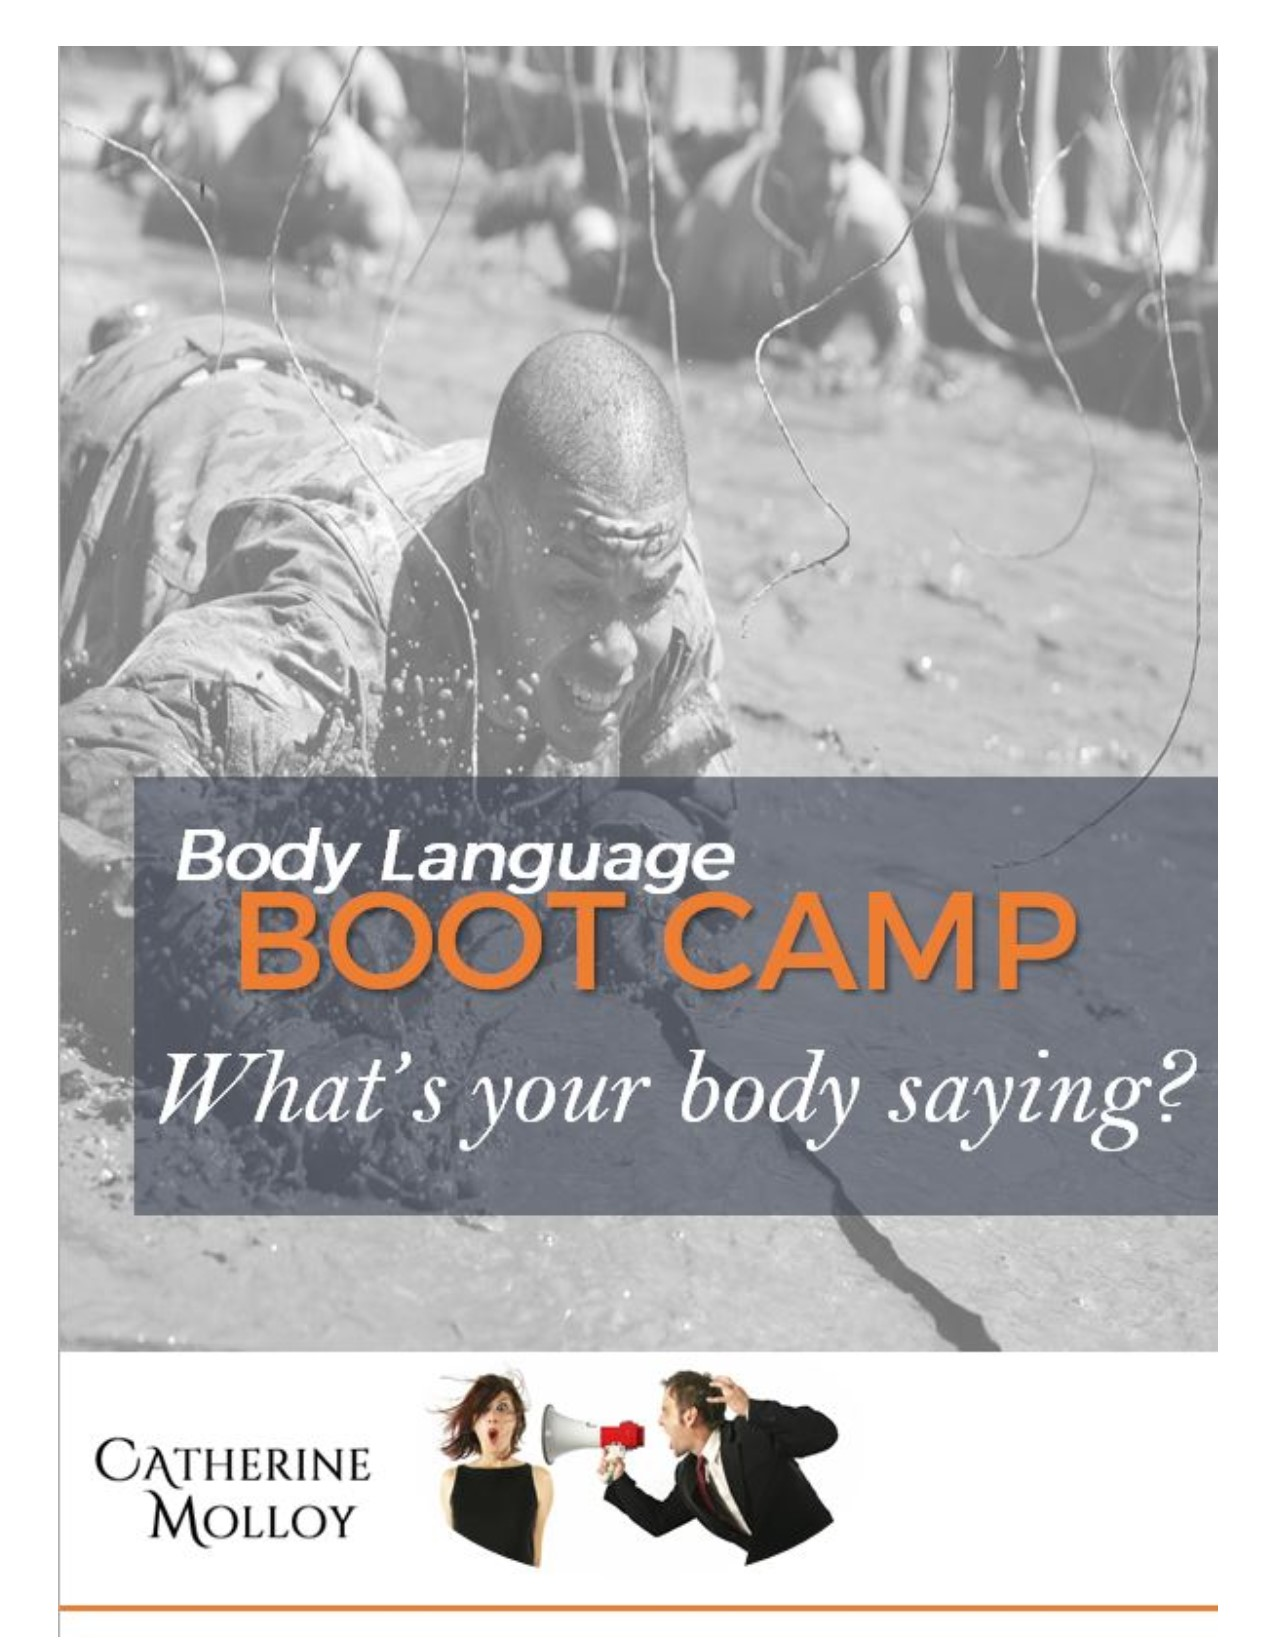 Body Language and Bootcamp – What is Your Body Saying?